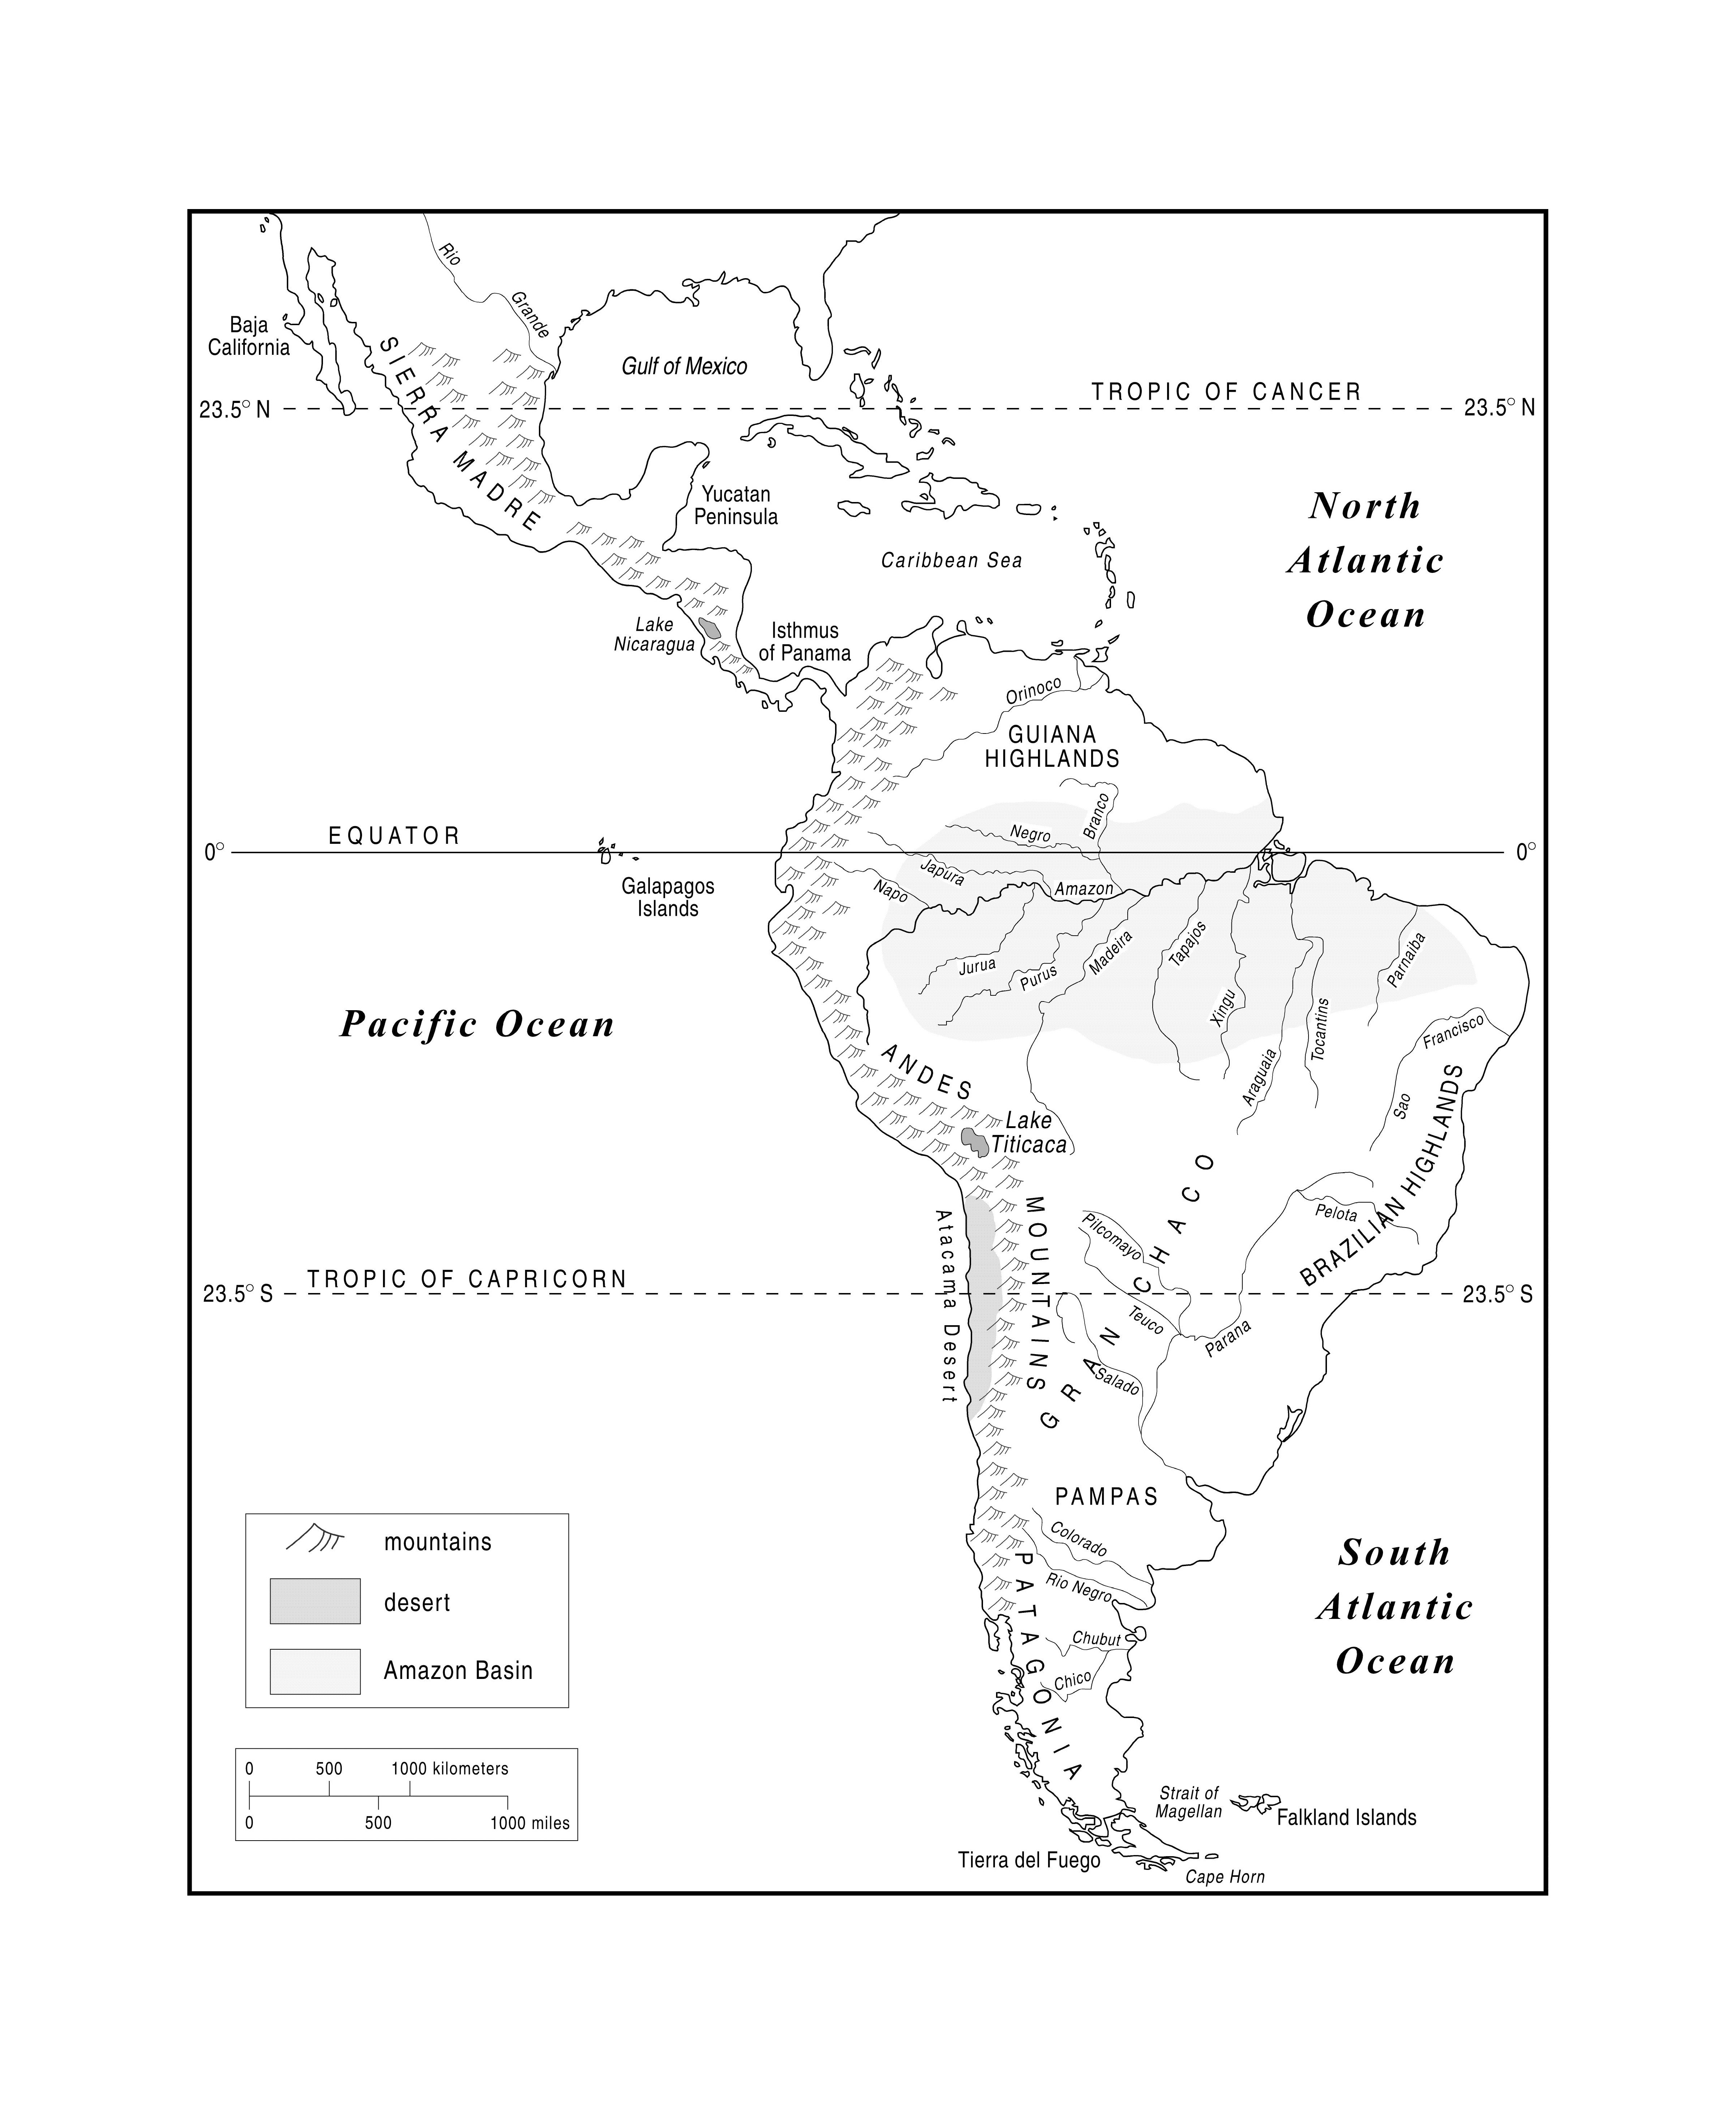 Maps of the Americas, page 2